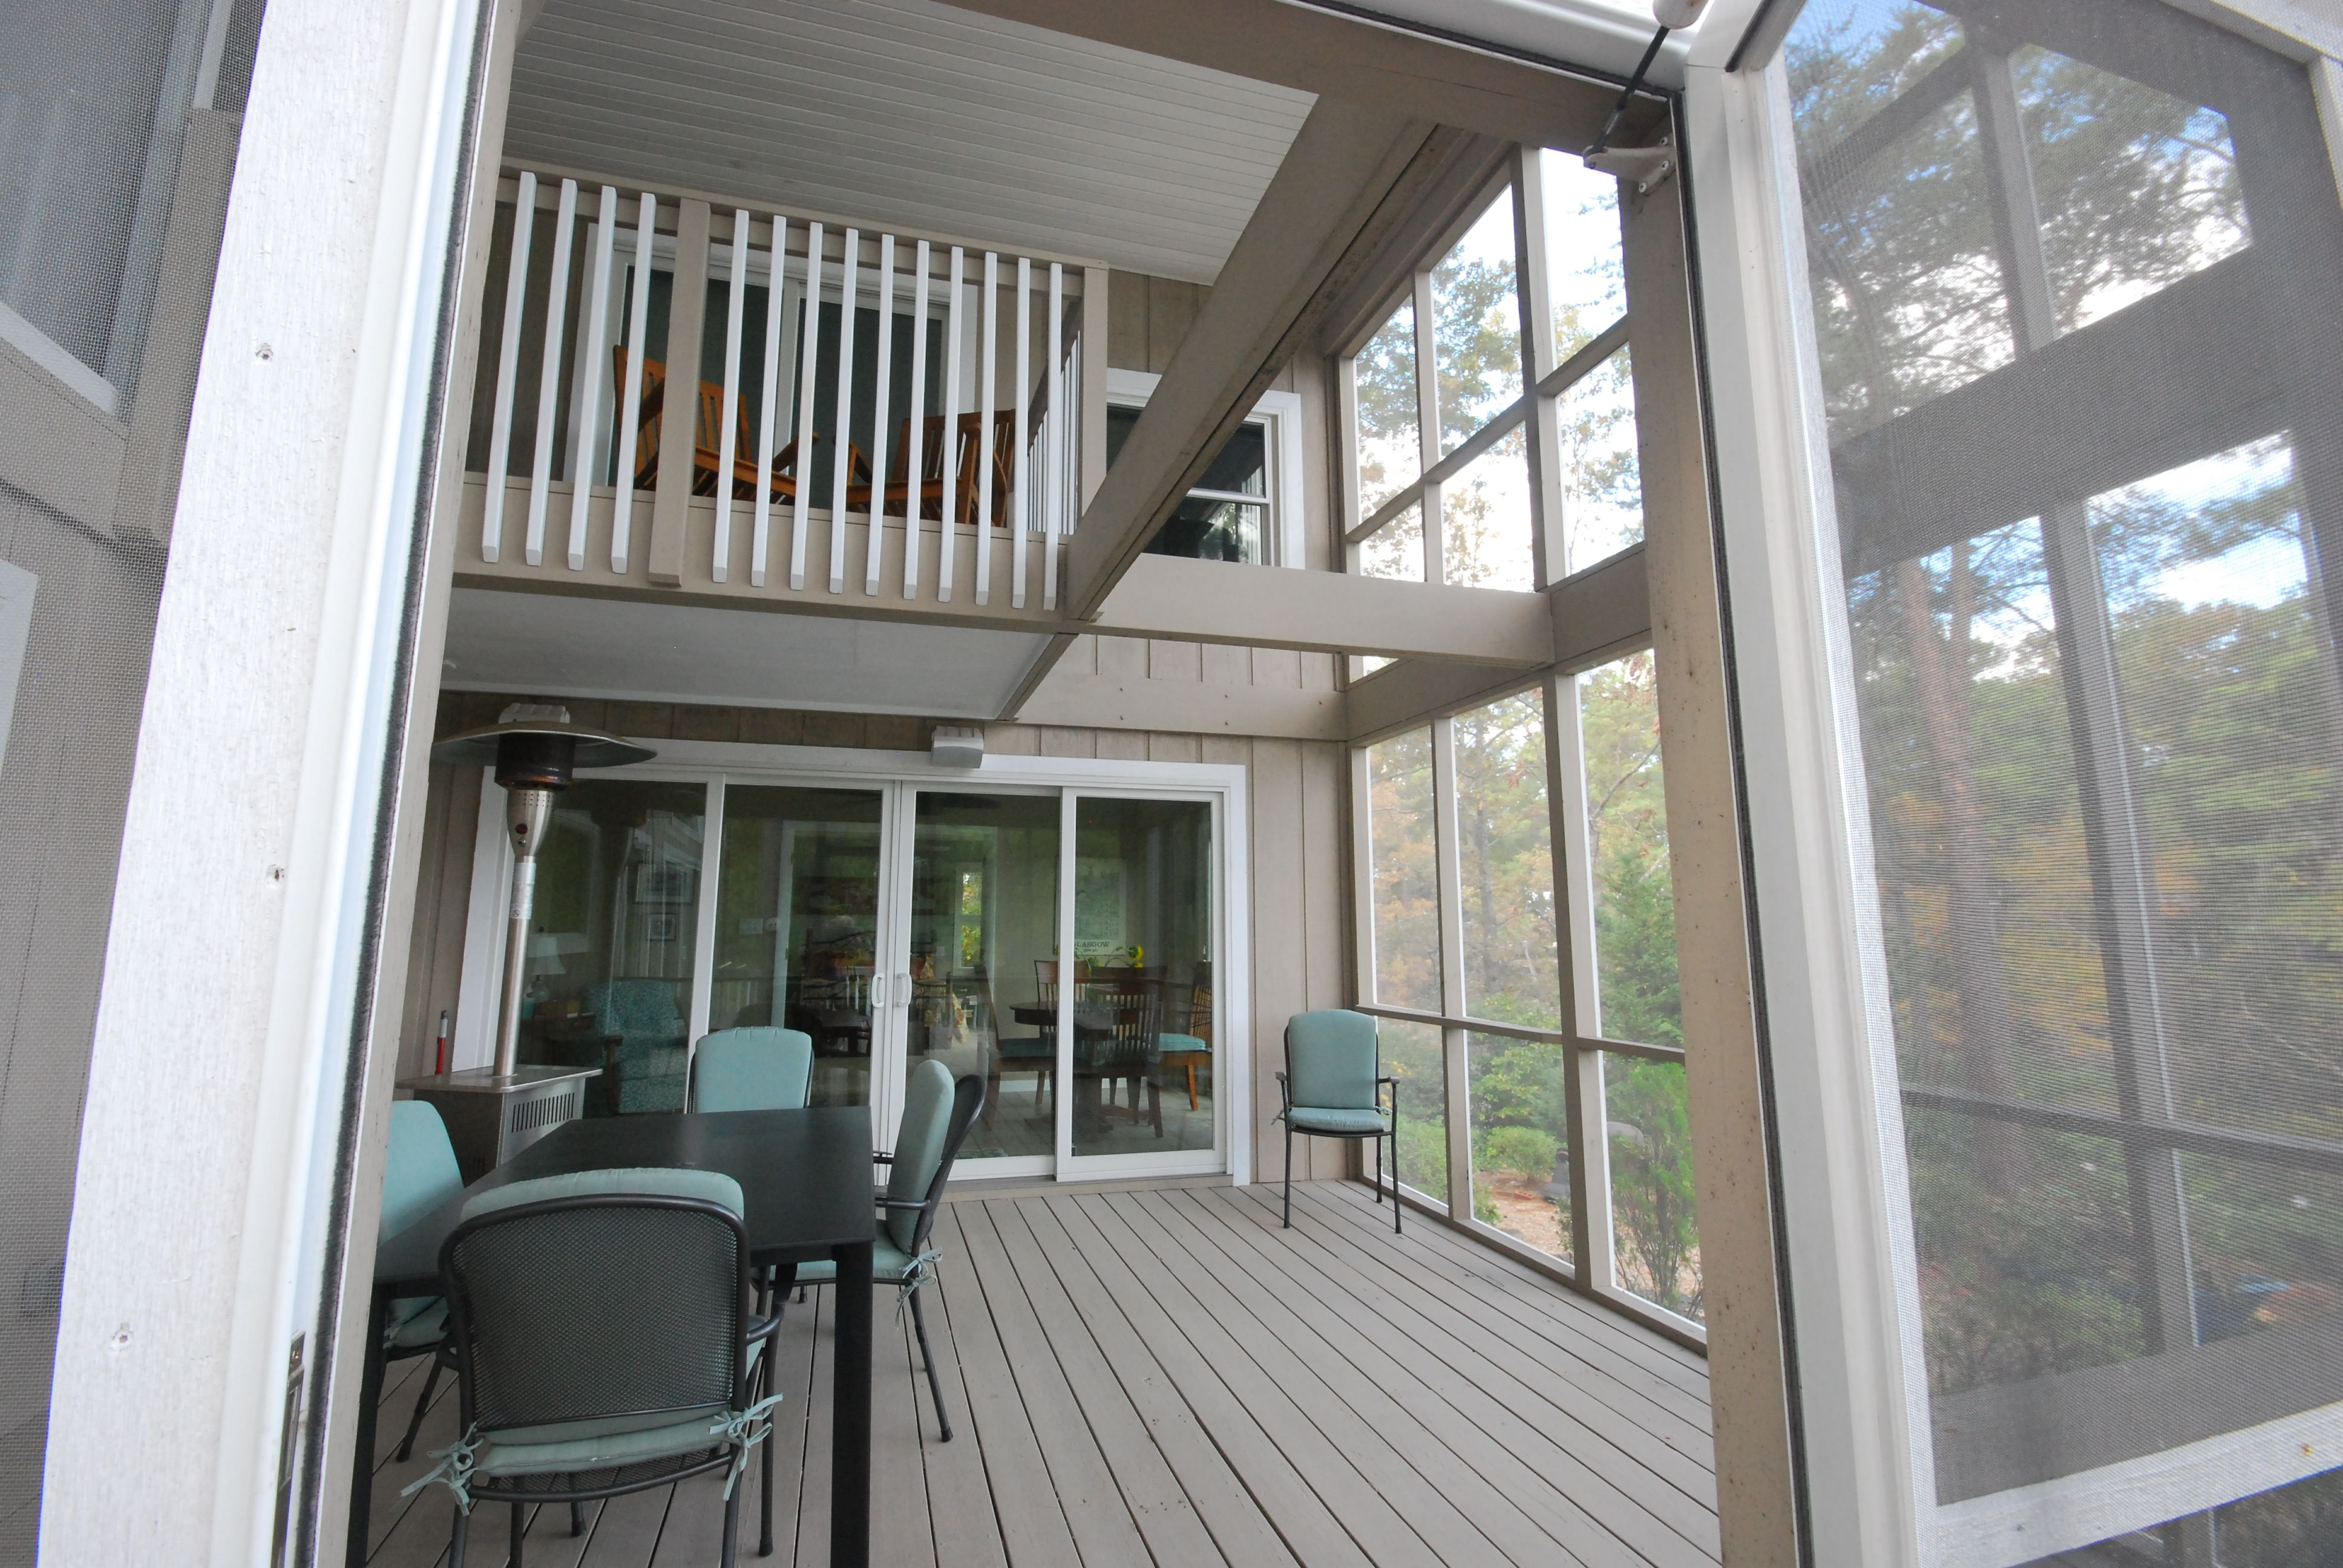 This screened porch has an enclosed second floor balcony